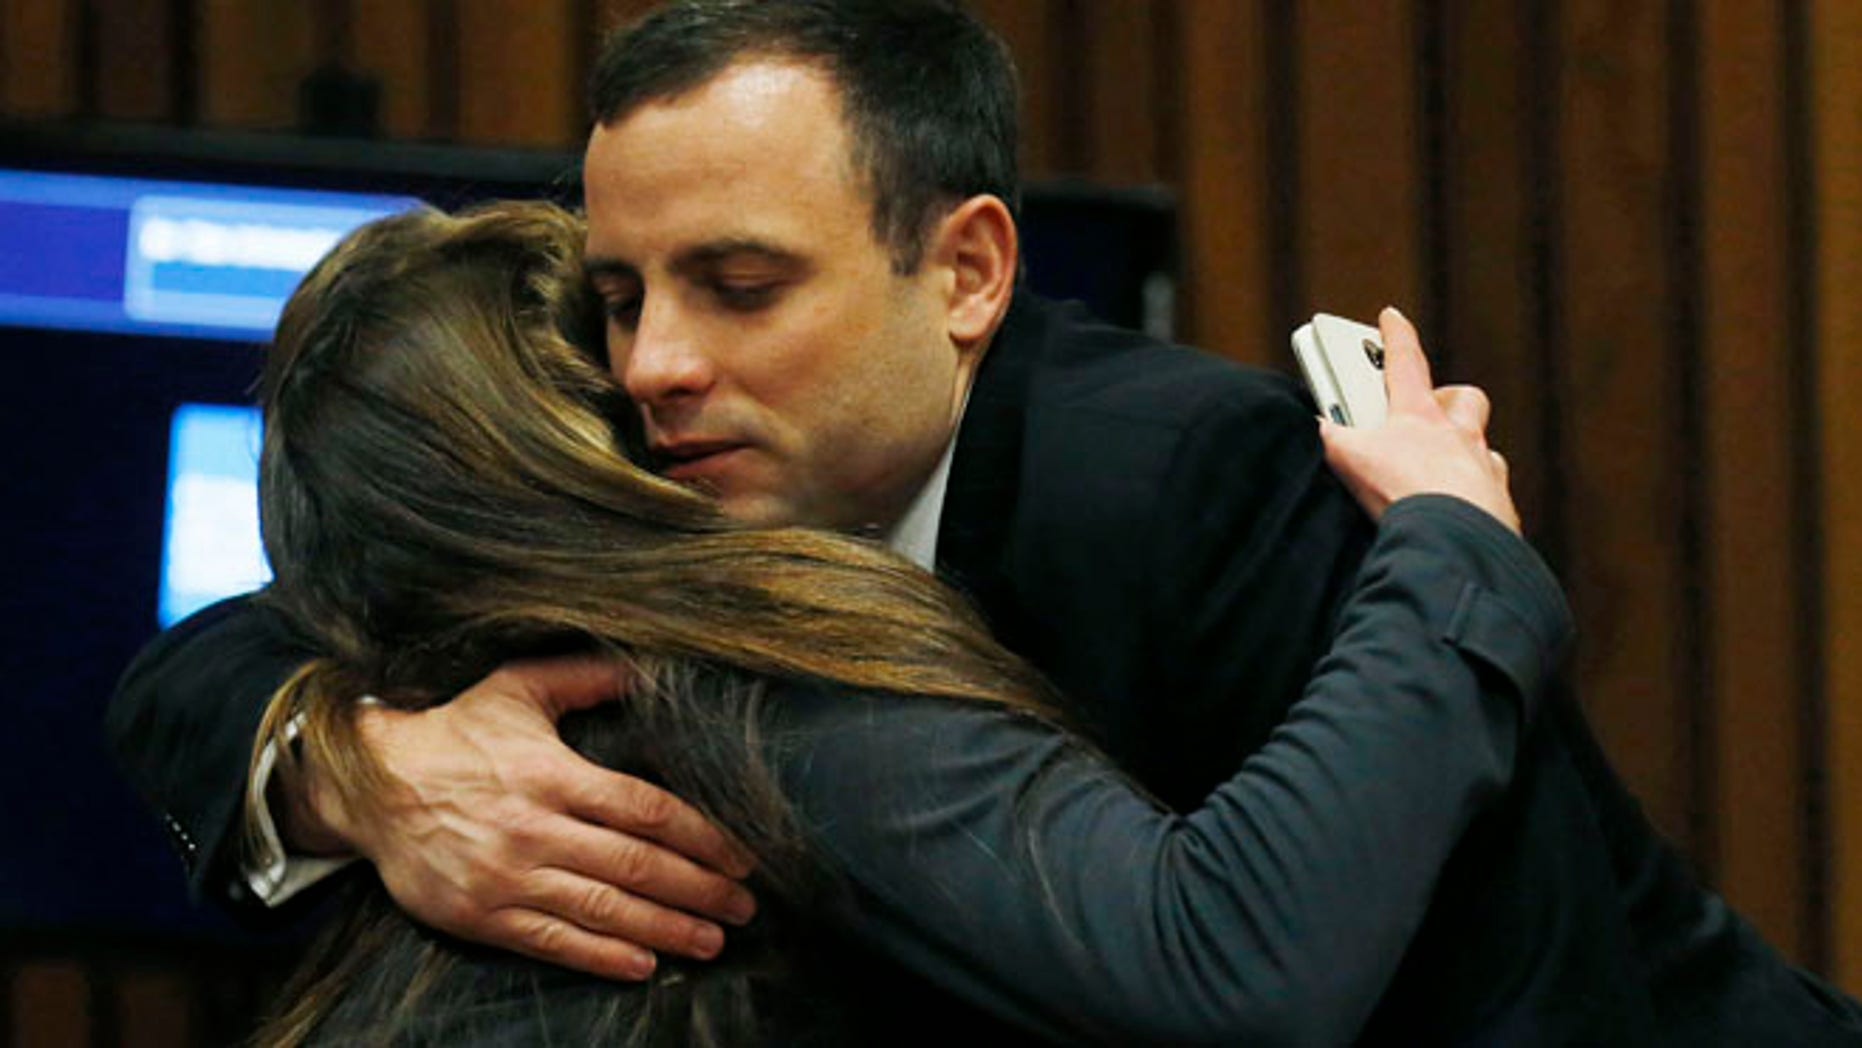 July 1, 2014: Oscar Pistorius is greeted by a well-wisher at a court in Pretoria, South Africa.